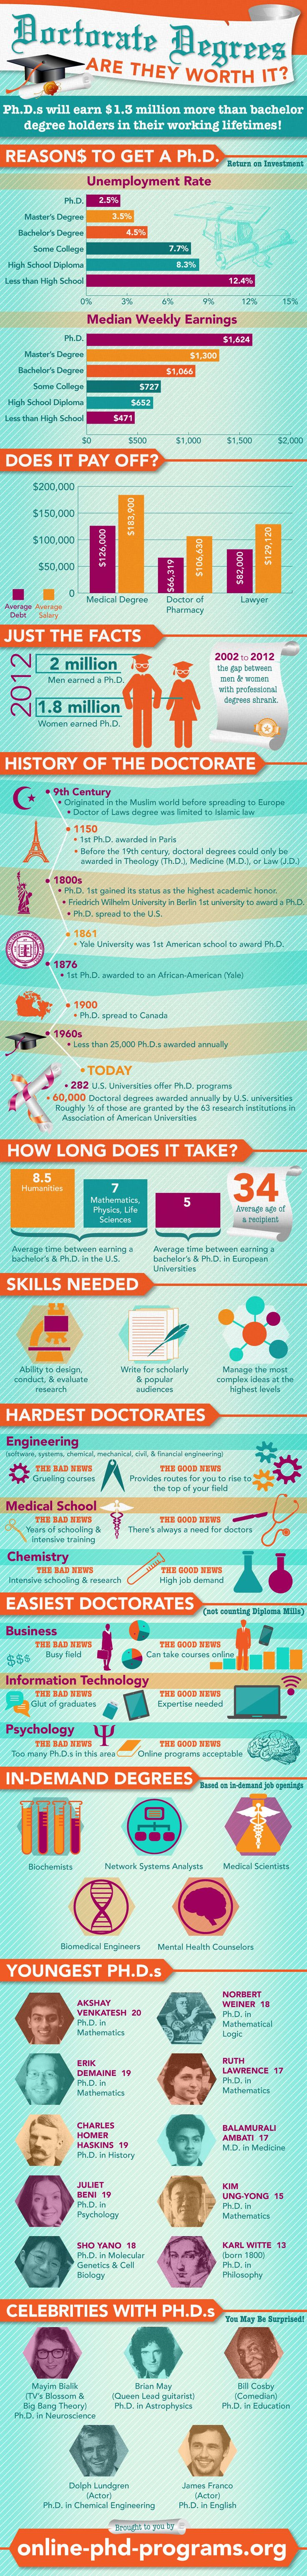 Doctorate Degrees: Are They Worth It? www.online-phd-programs.org/doctorate-degrees/ btw:getting a bachellor+master+PhD takes  8-10 years in Europe.